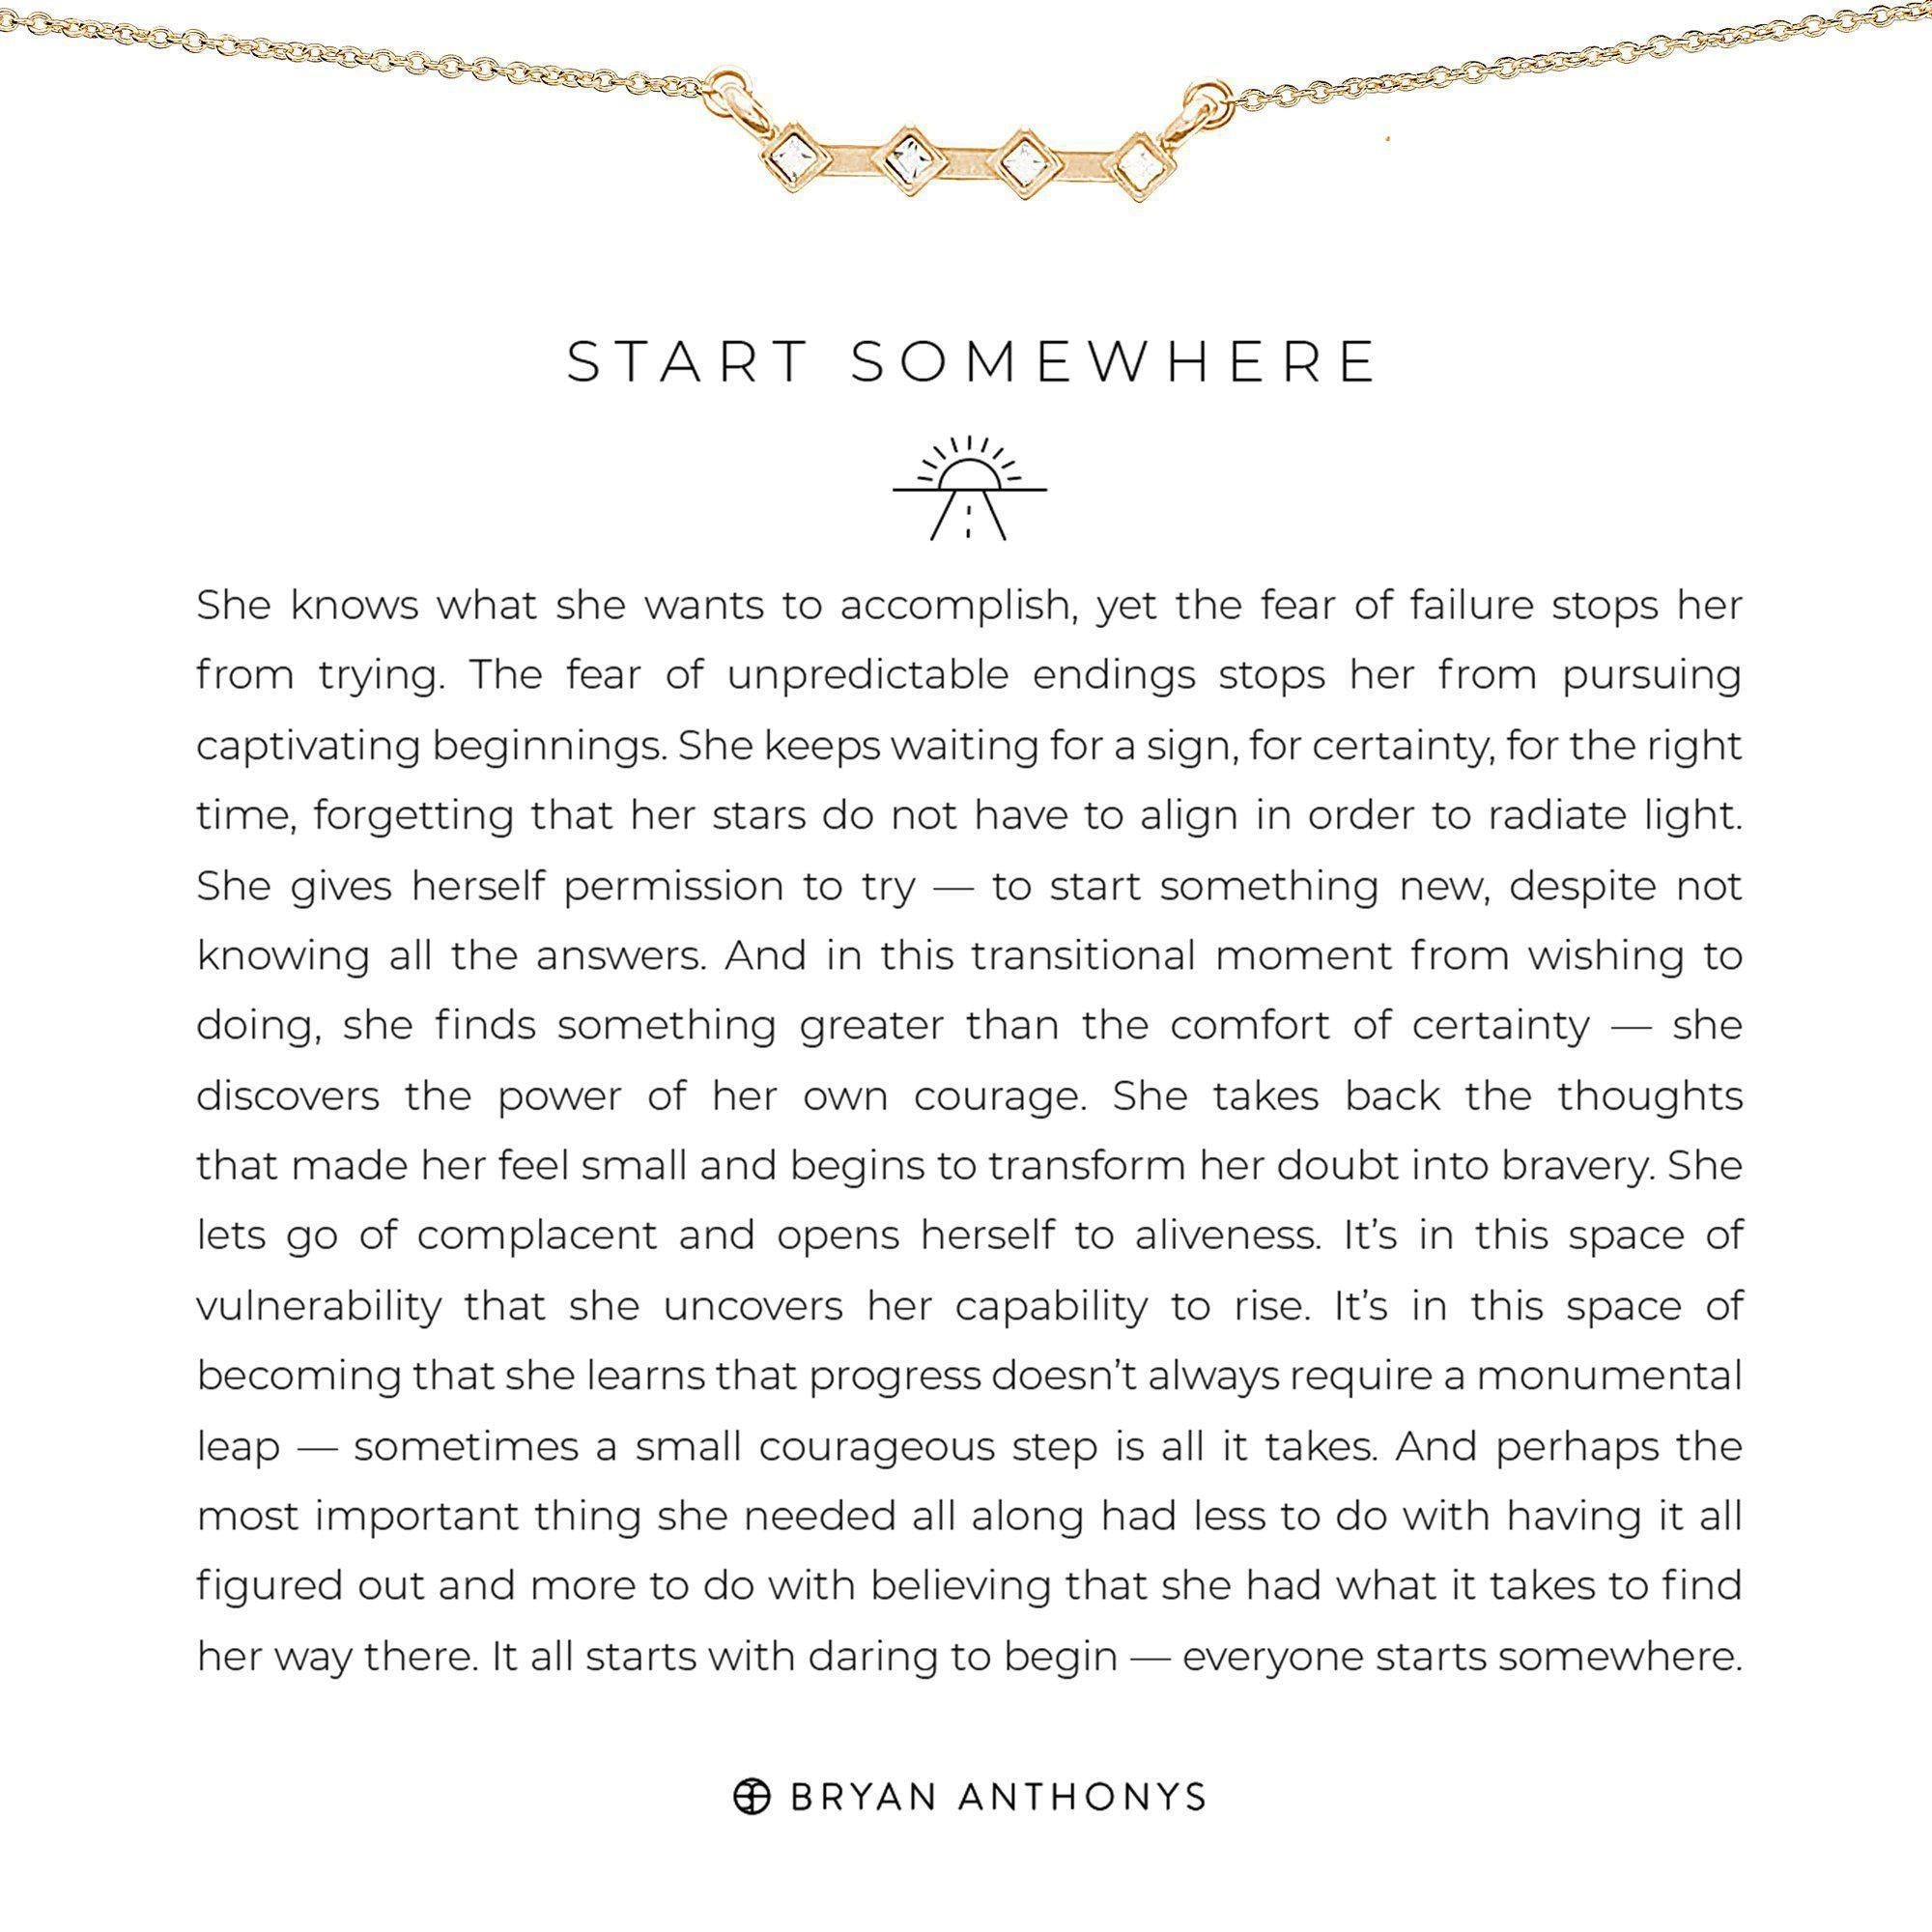 Start Somewhere-Necklace-Bryan Anthonys-Gold-Lizzy's Pink Boutique